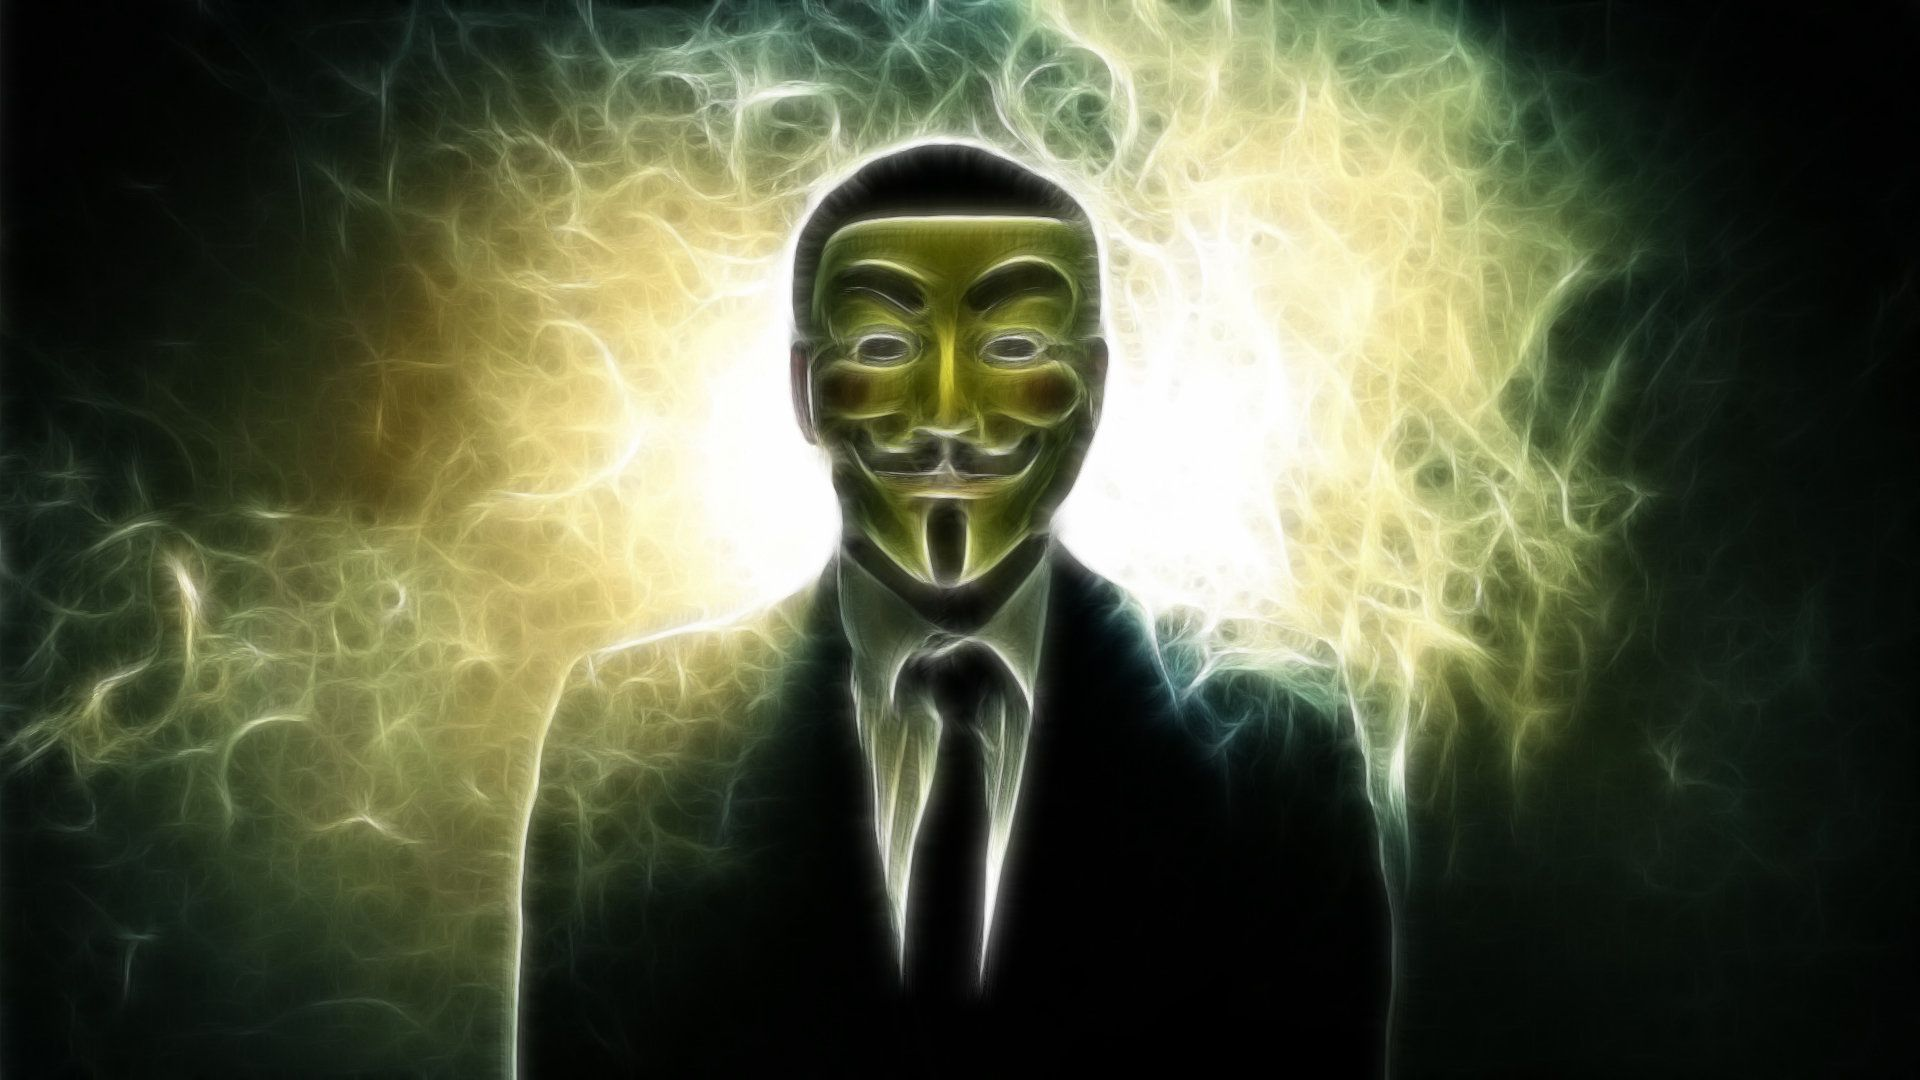 anonymous screensaver wallpapers